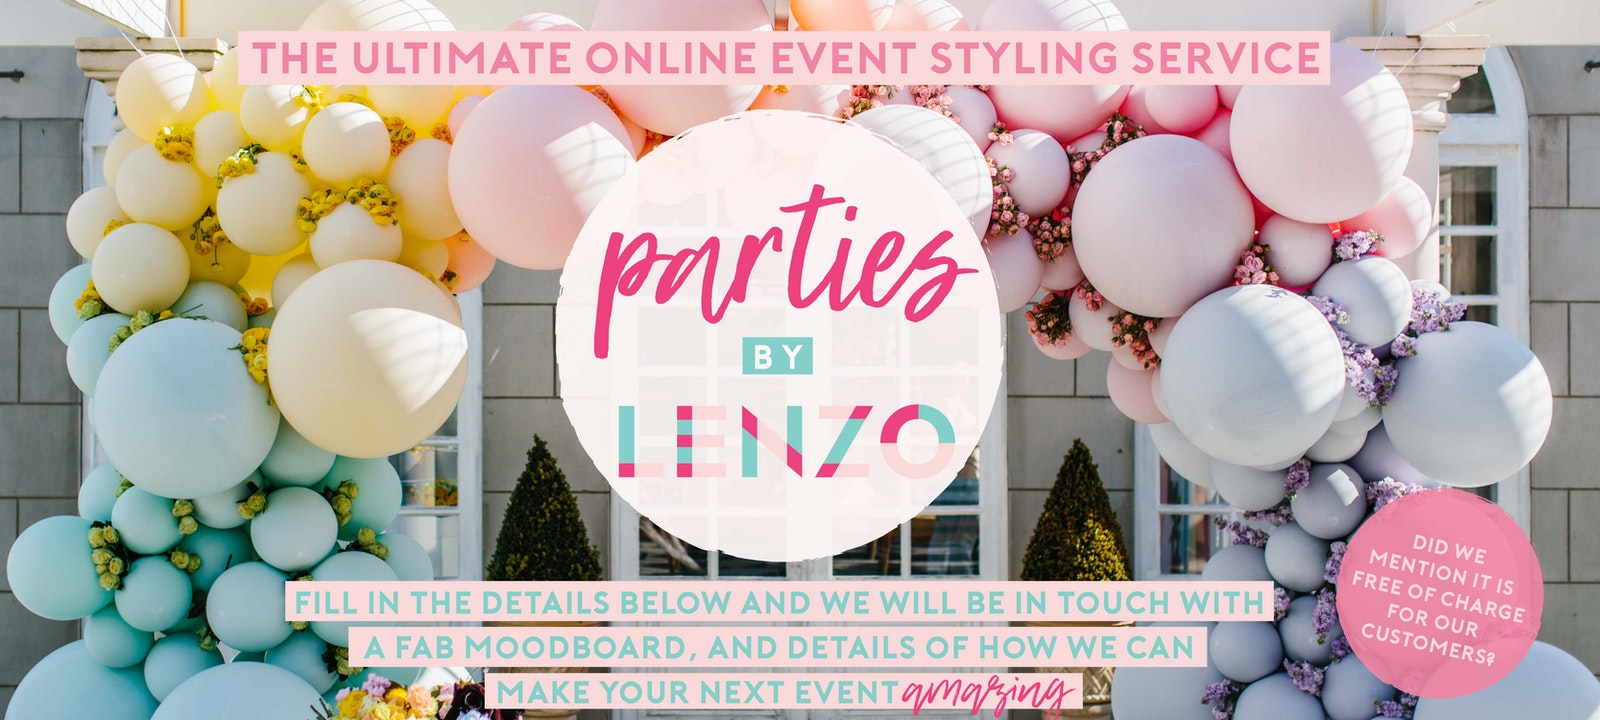 Parties by LENZO | Event Styling Assistance